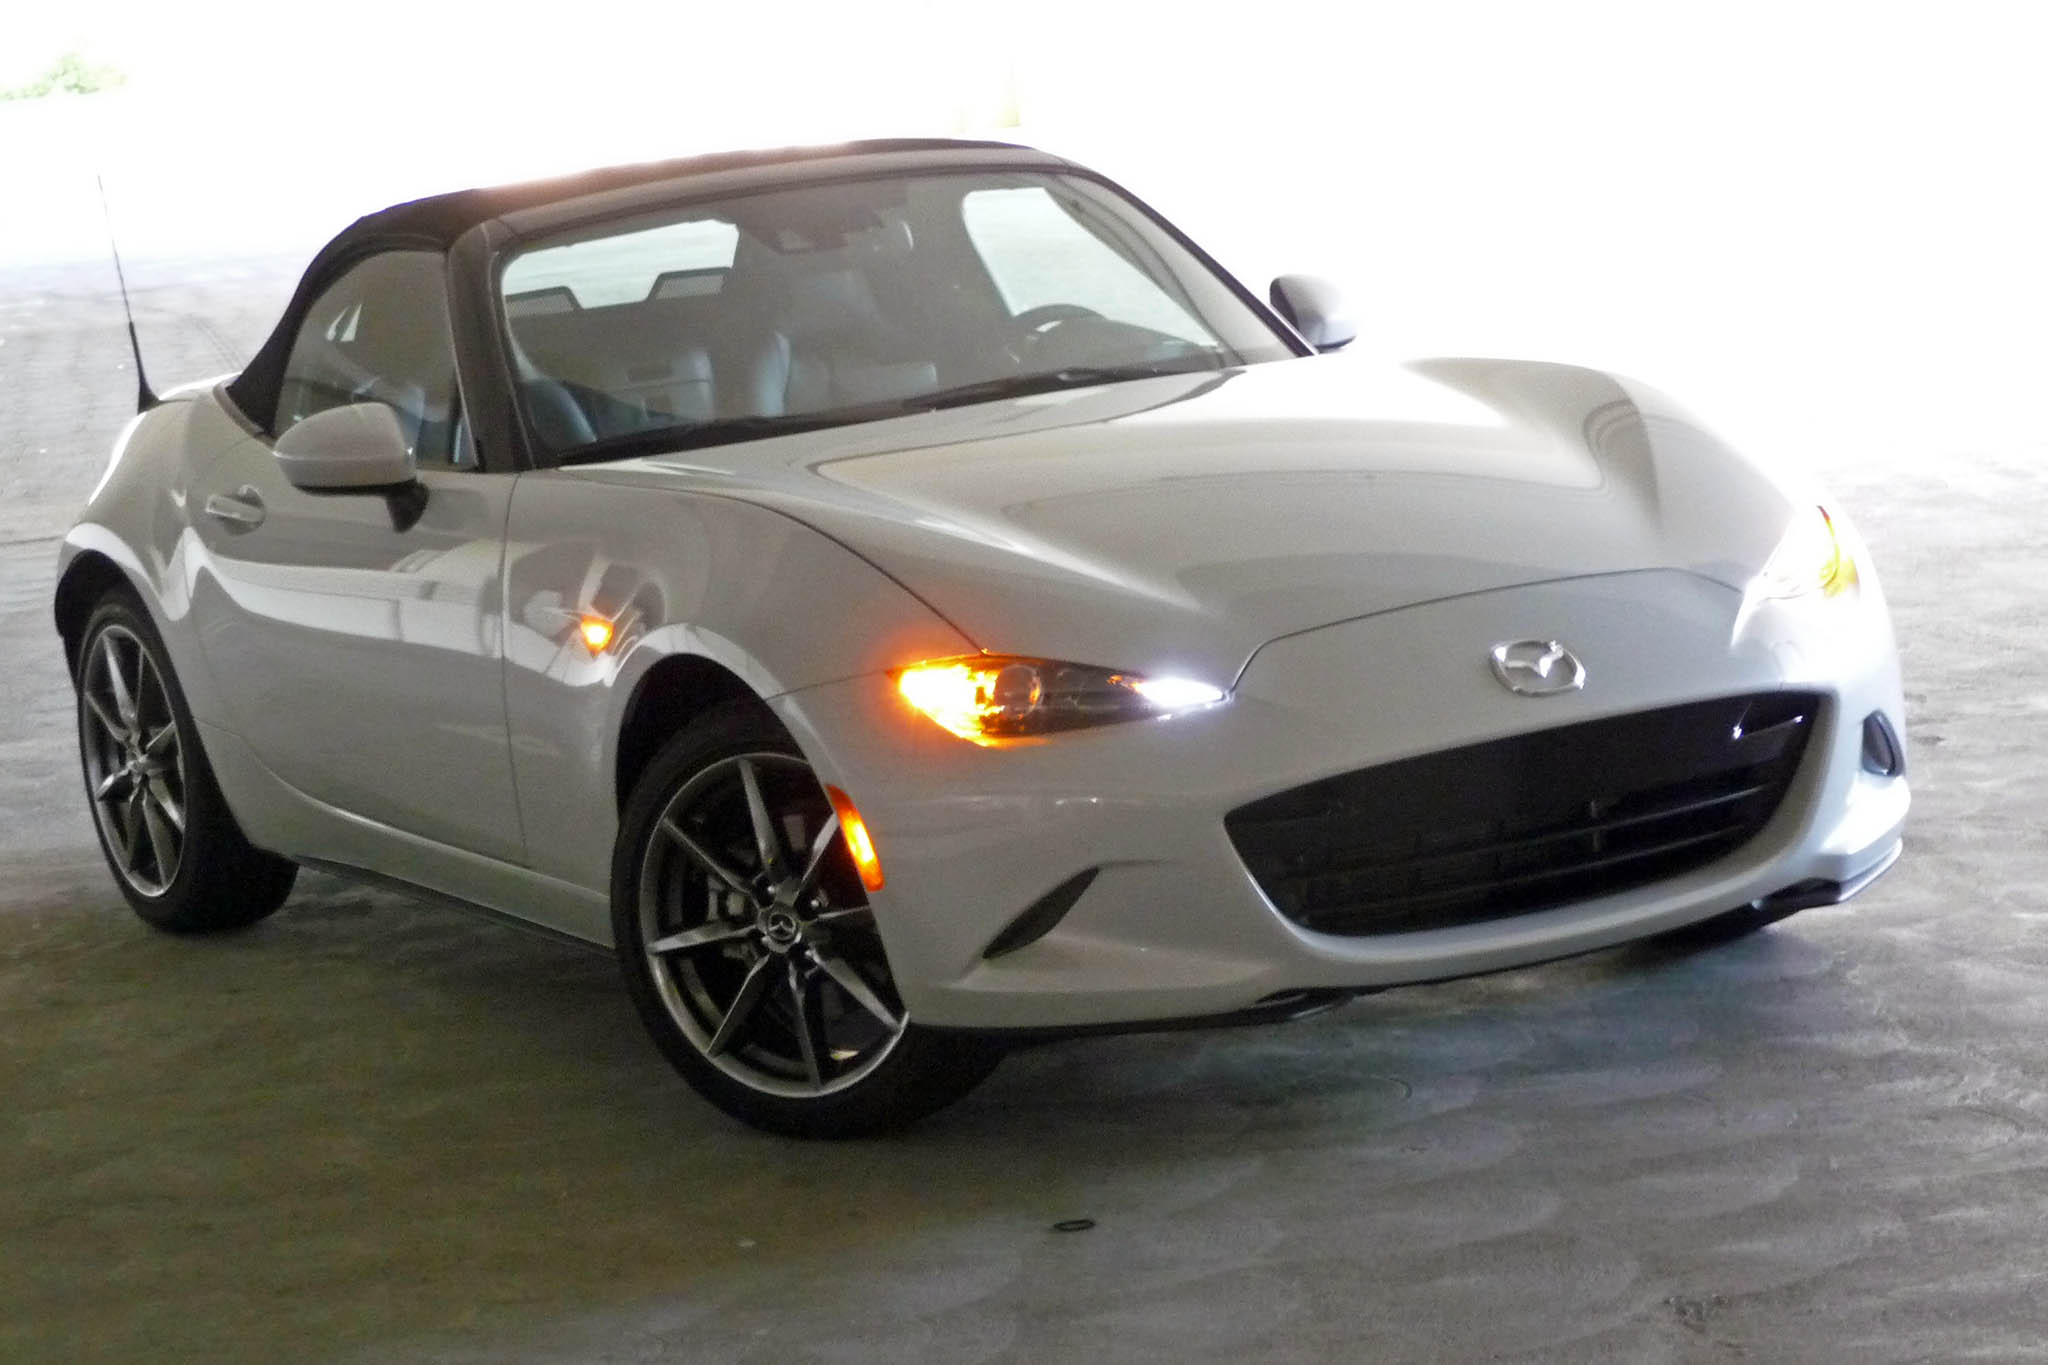 24 Awesome 2016 Mazda Mx5 Miata First Look Tinadh Com